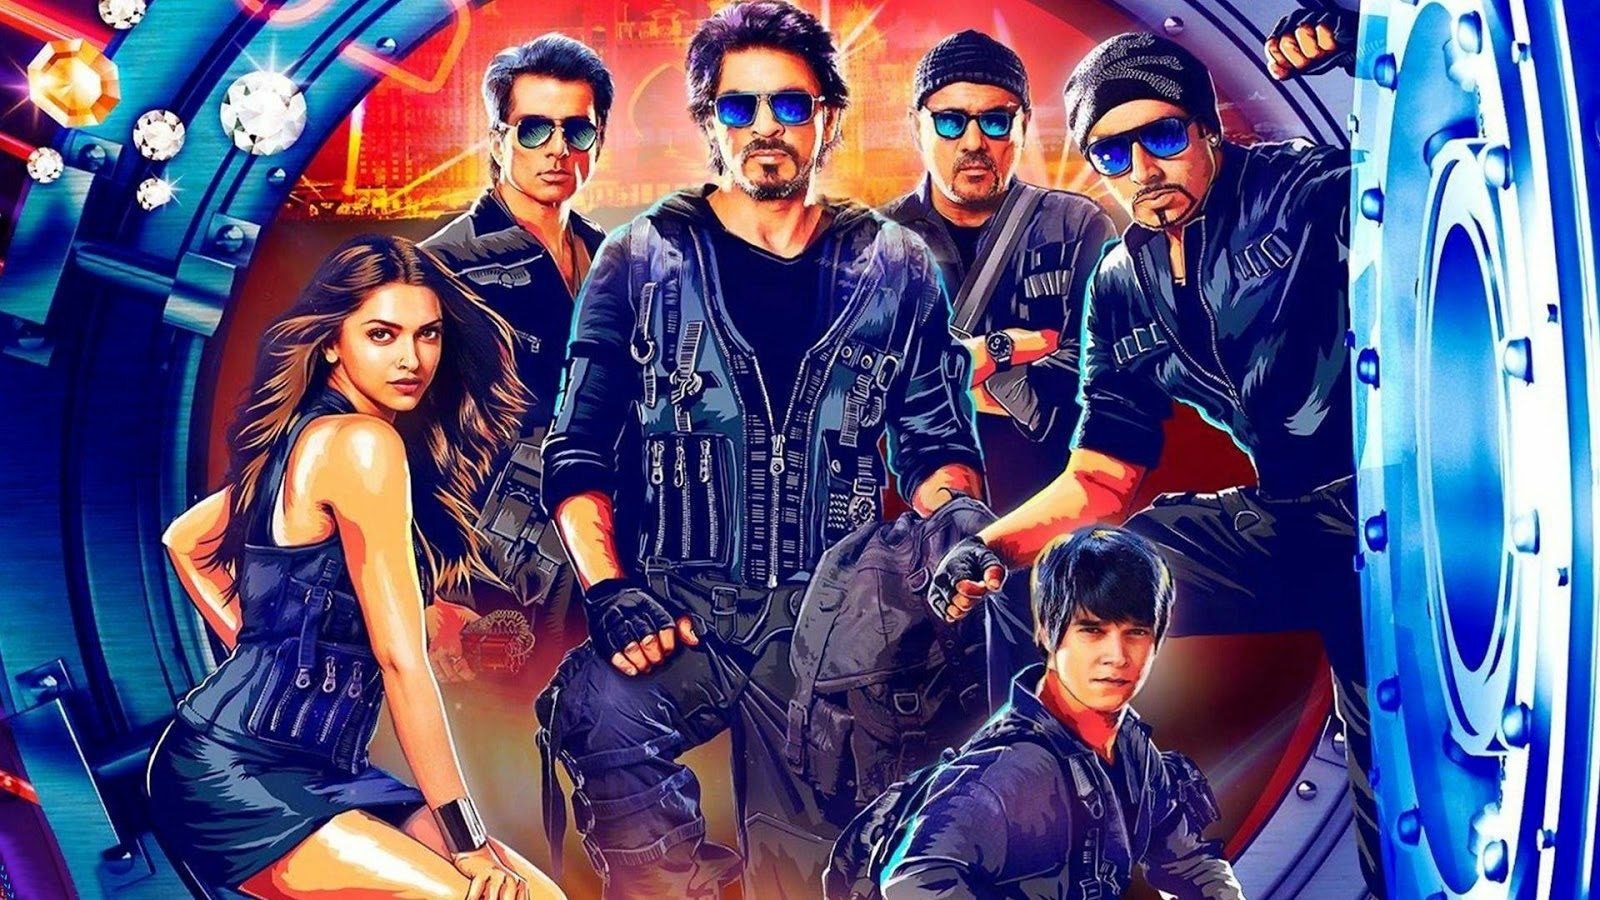 Bollywood arena happy new year box office prediction - Bollywood movies 2014 box office collection ...